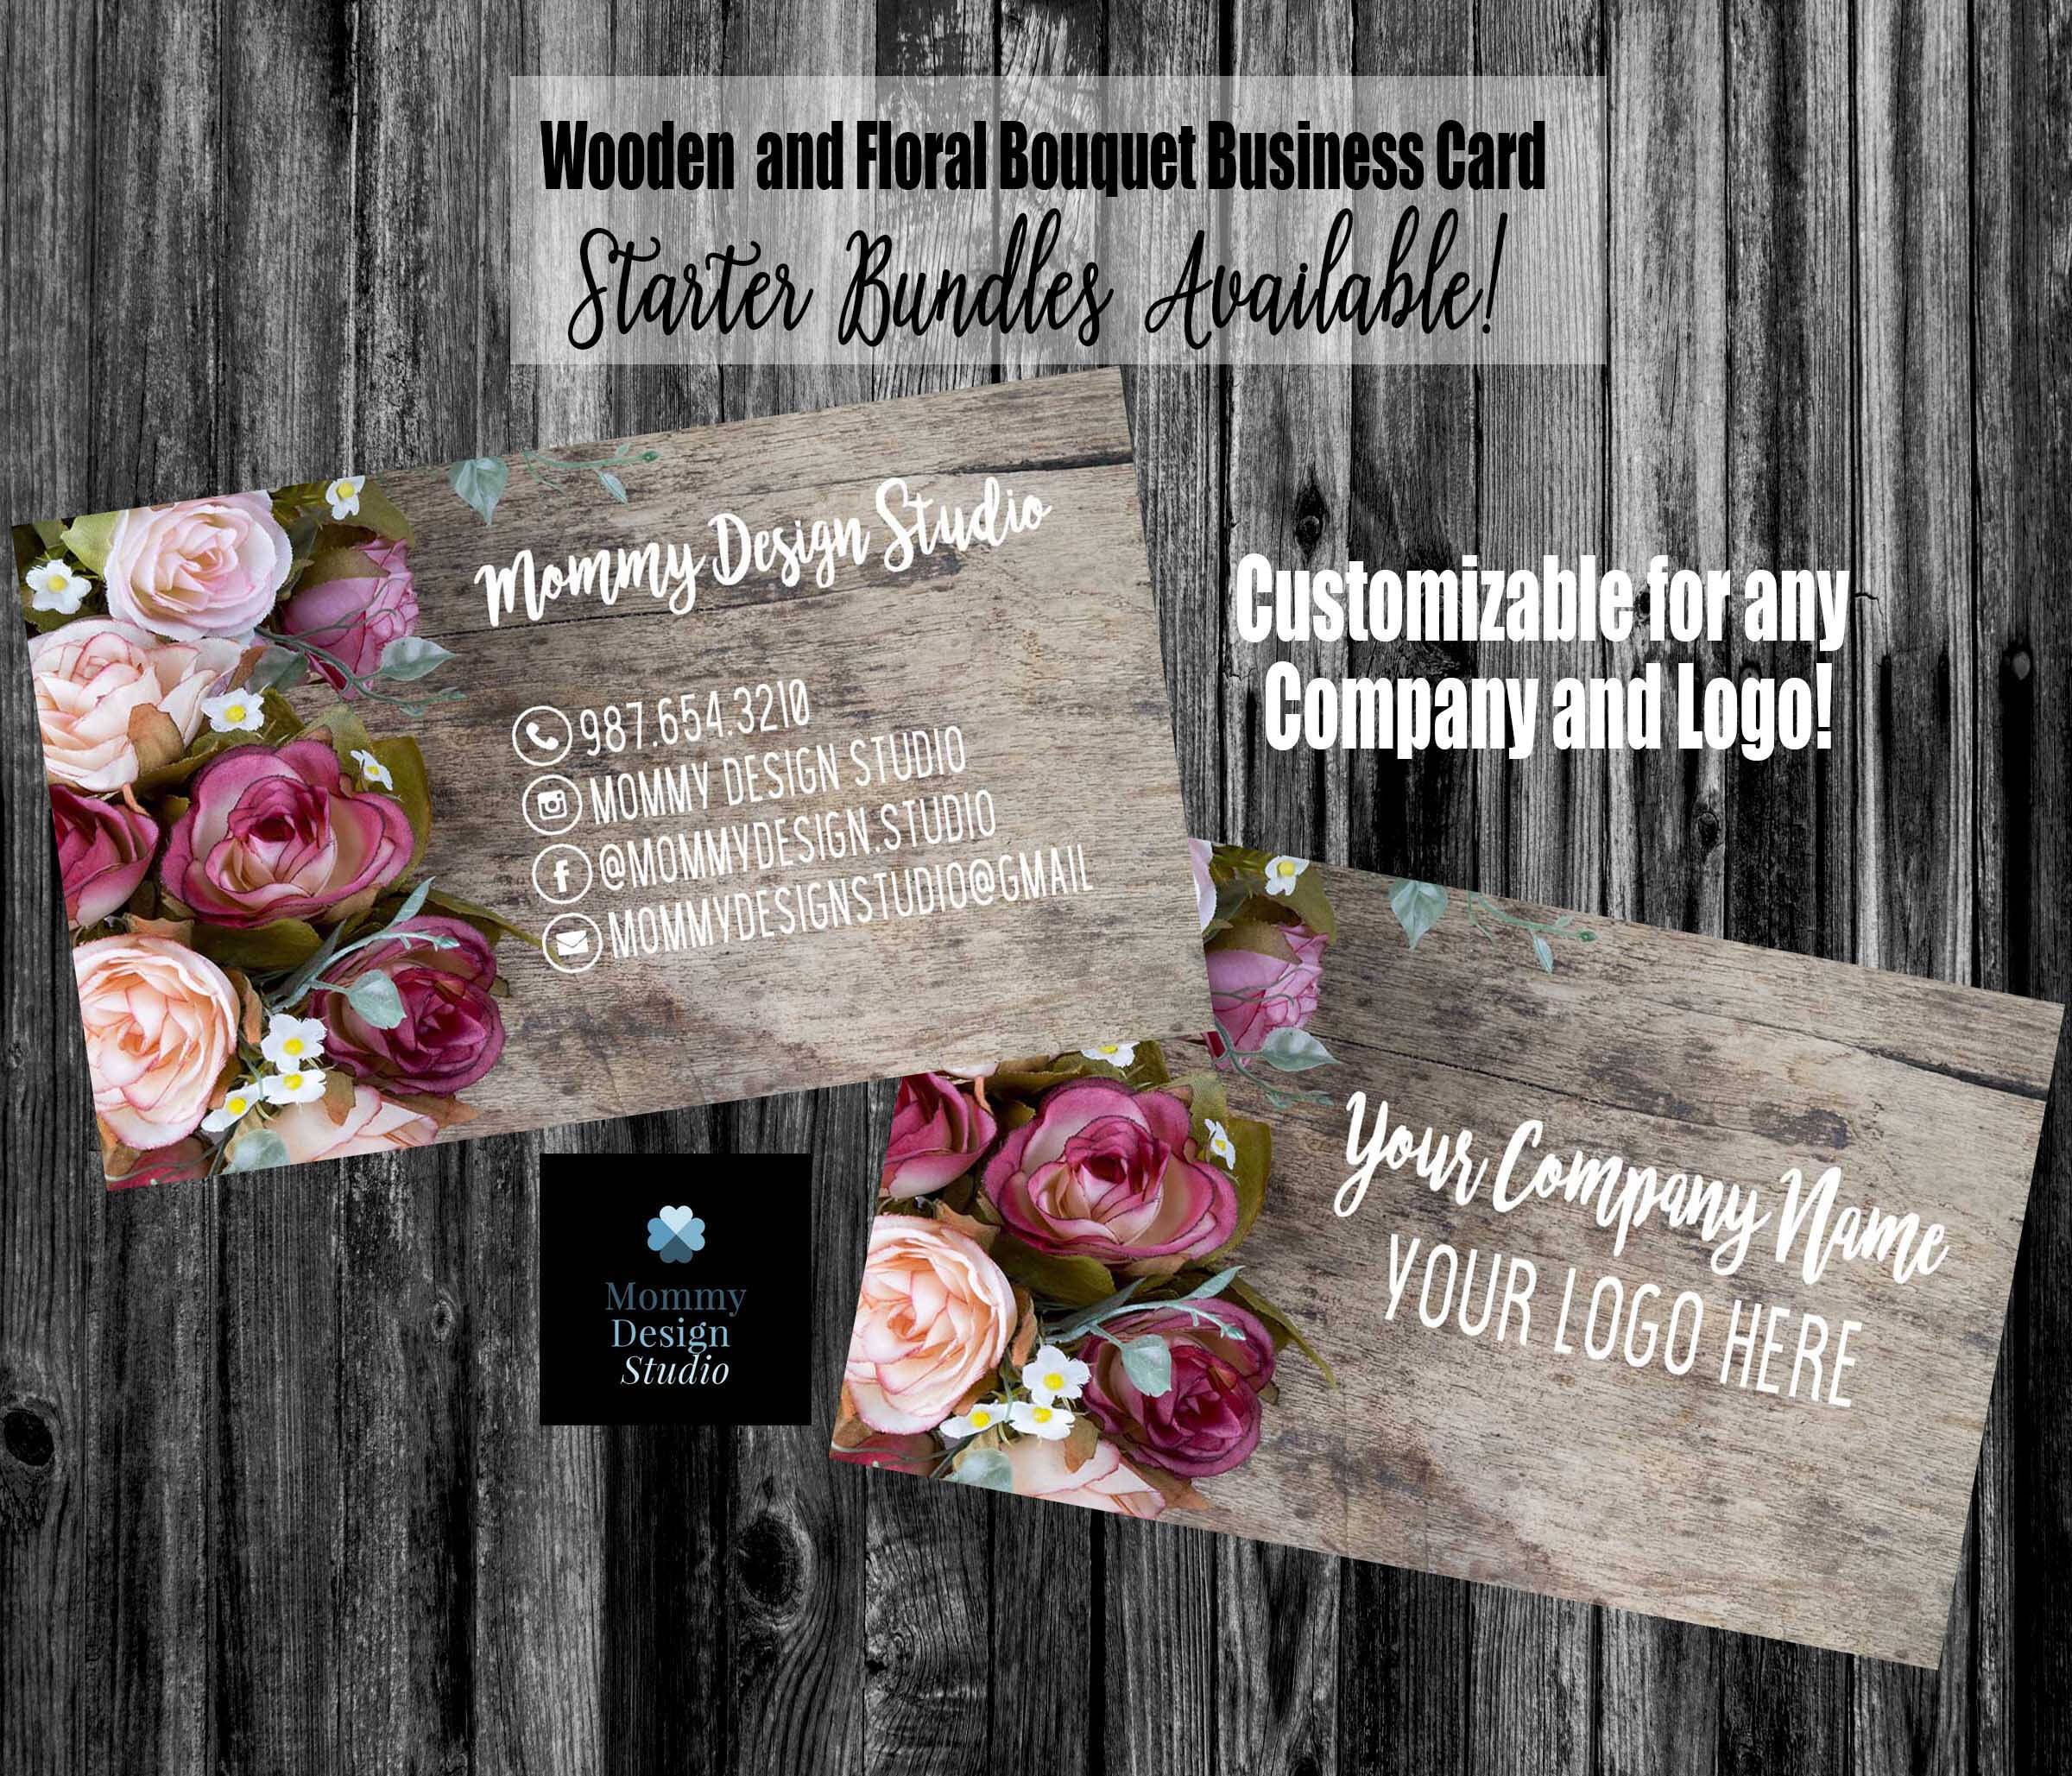 Rose bouquet on wood business card ho approved compliant fonts rose bouquet on wood business card ho approved compliant fontscolors available bundles reheart Choice Image